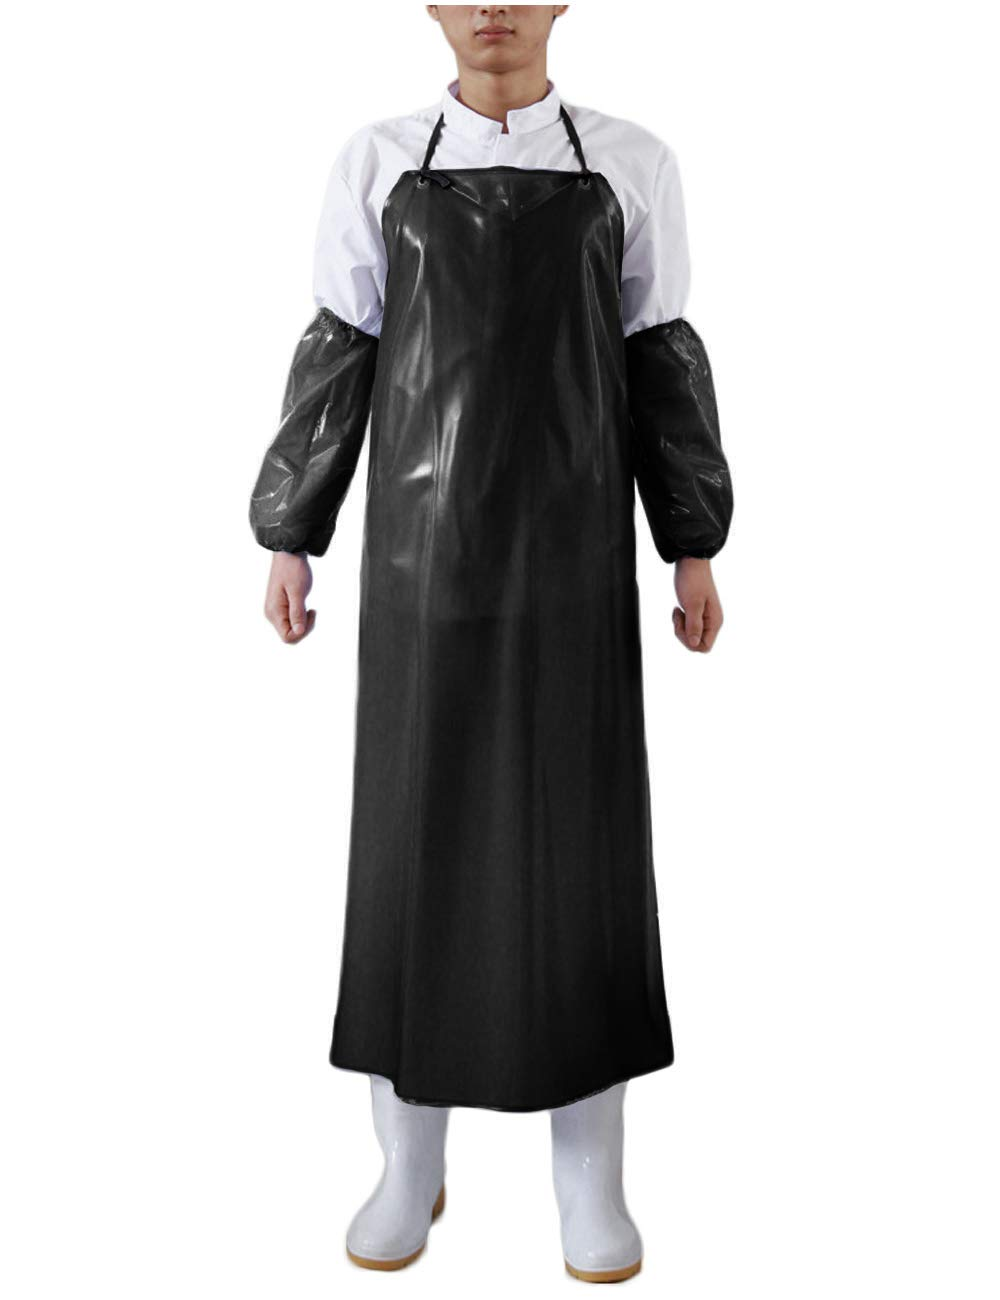 Surblue Waterproof Apron Anti-Corrosion Work Safe Apron Black Apron&Sleeves Set